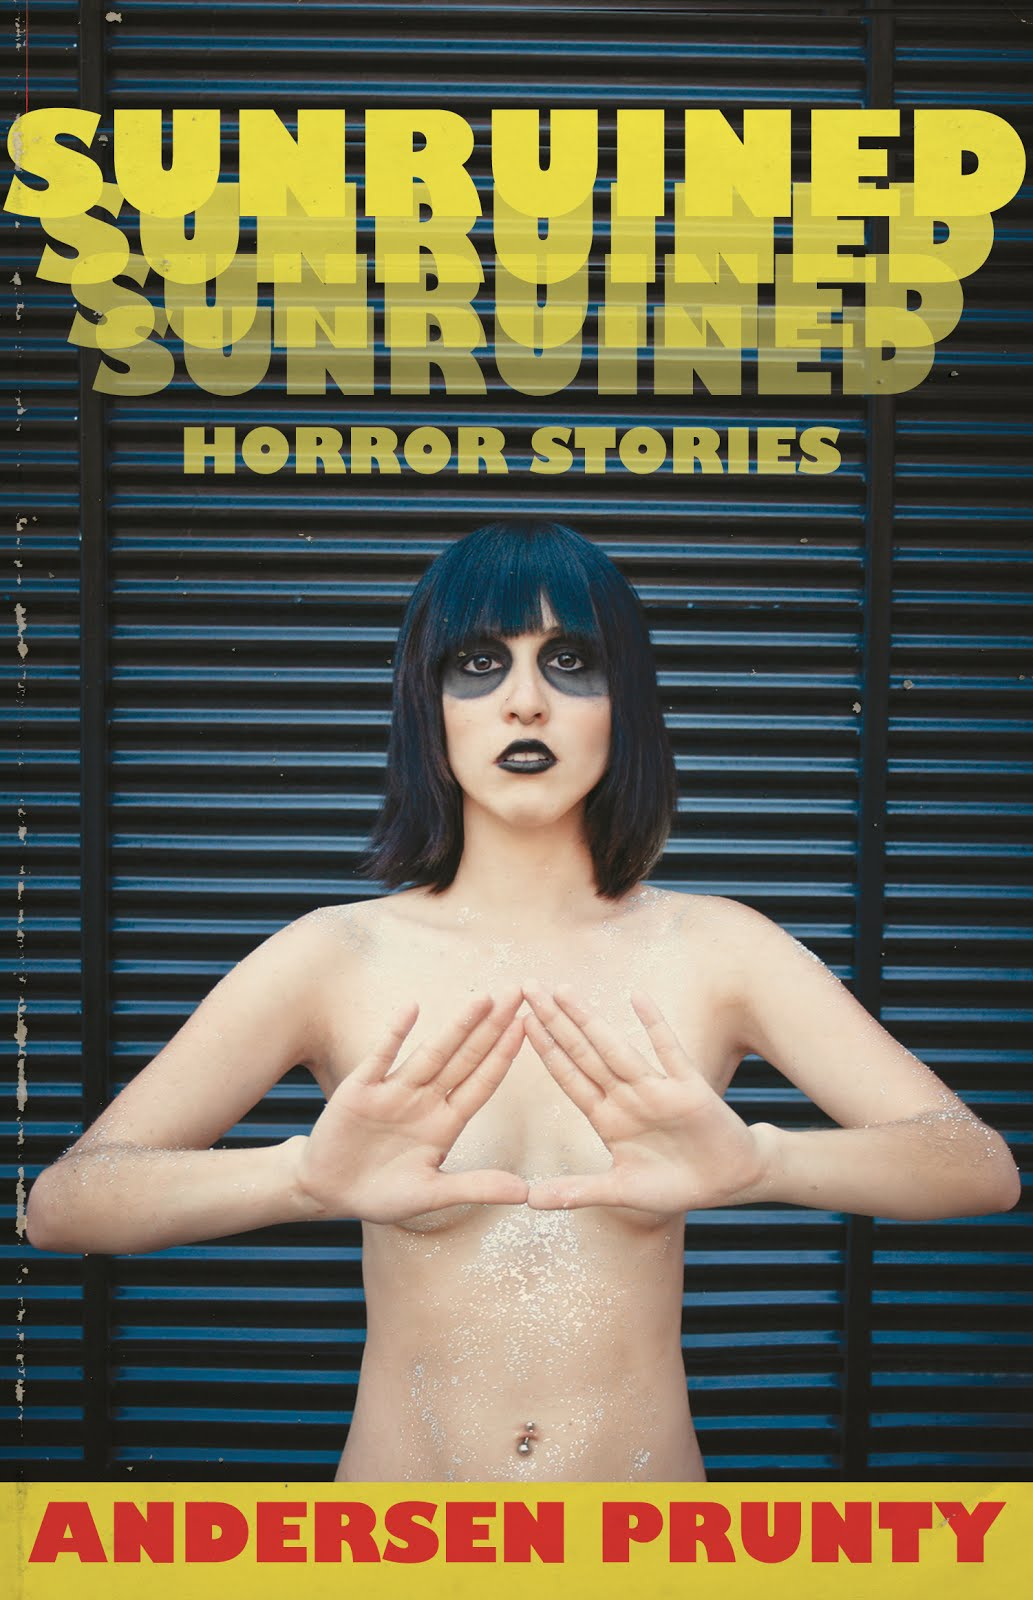 Sunruined: Horror Stories